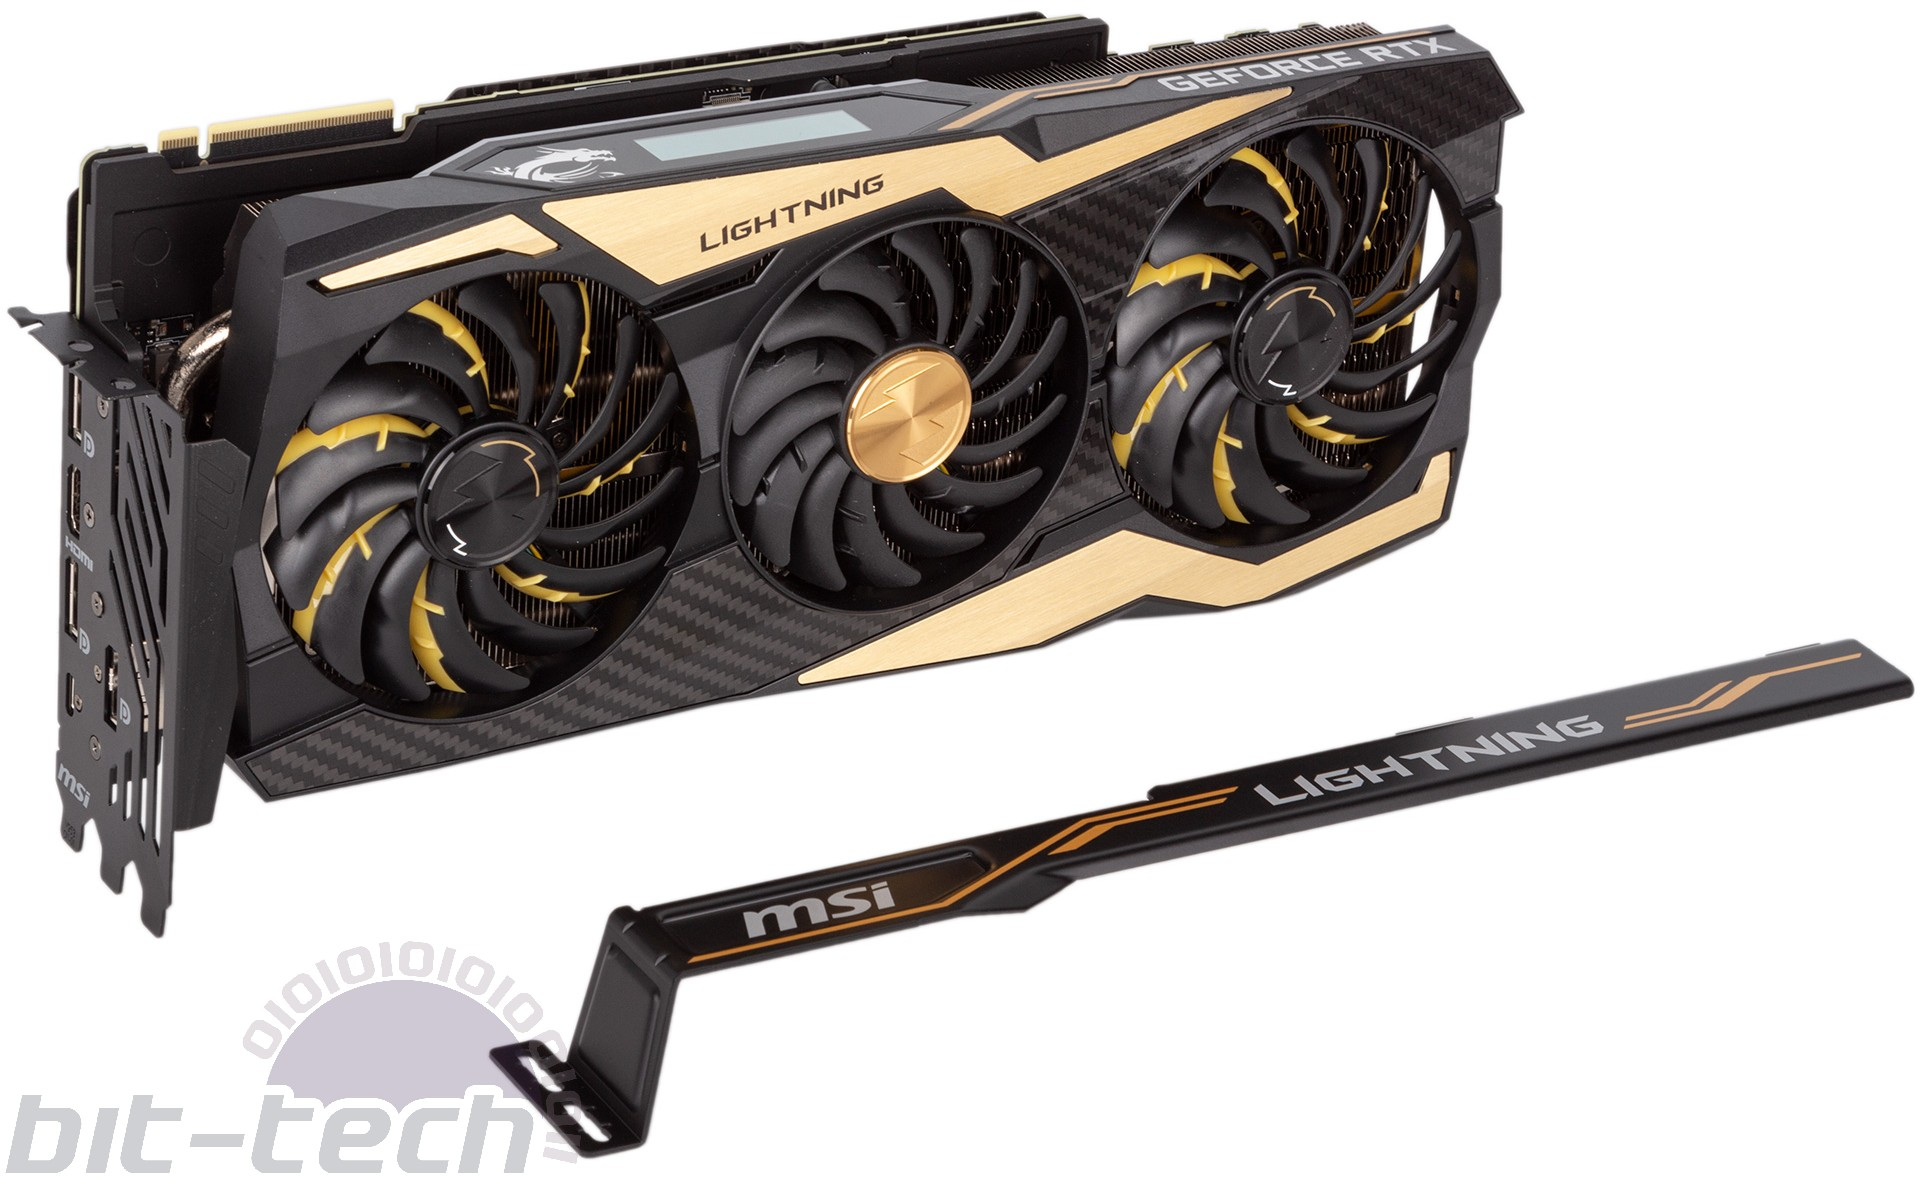 MSI GeForce RTX 2080 Ti Lightning Z Review | bit-tech net